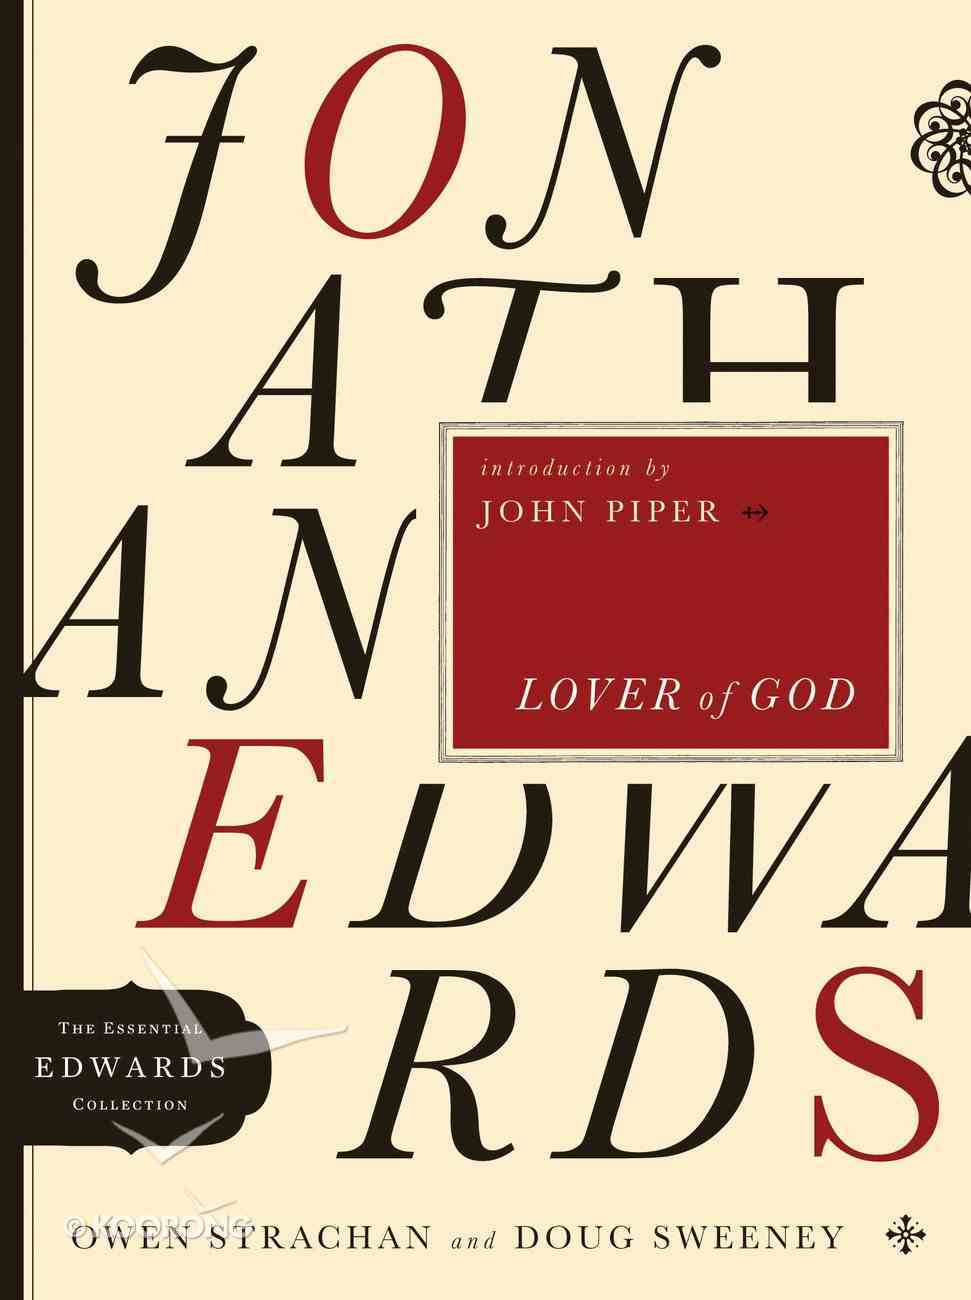 Jonathan Edwards Lover of God (Essential Edwards Collection) eBook